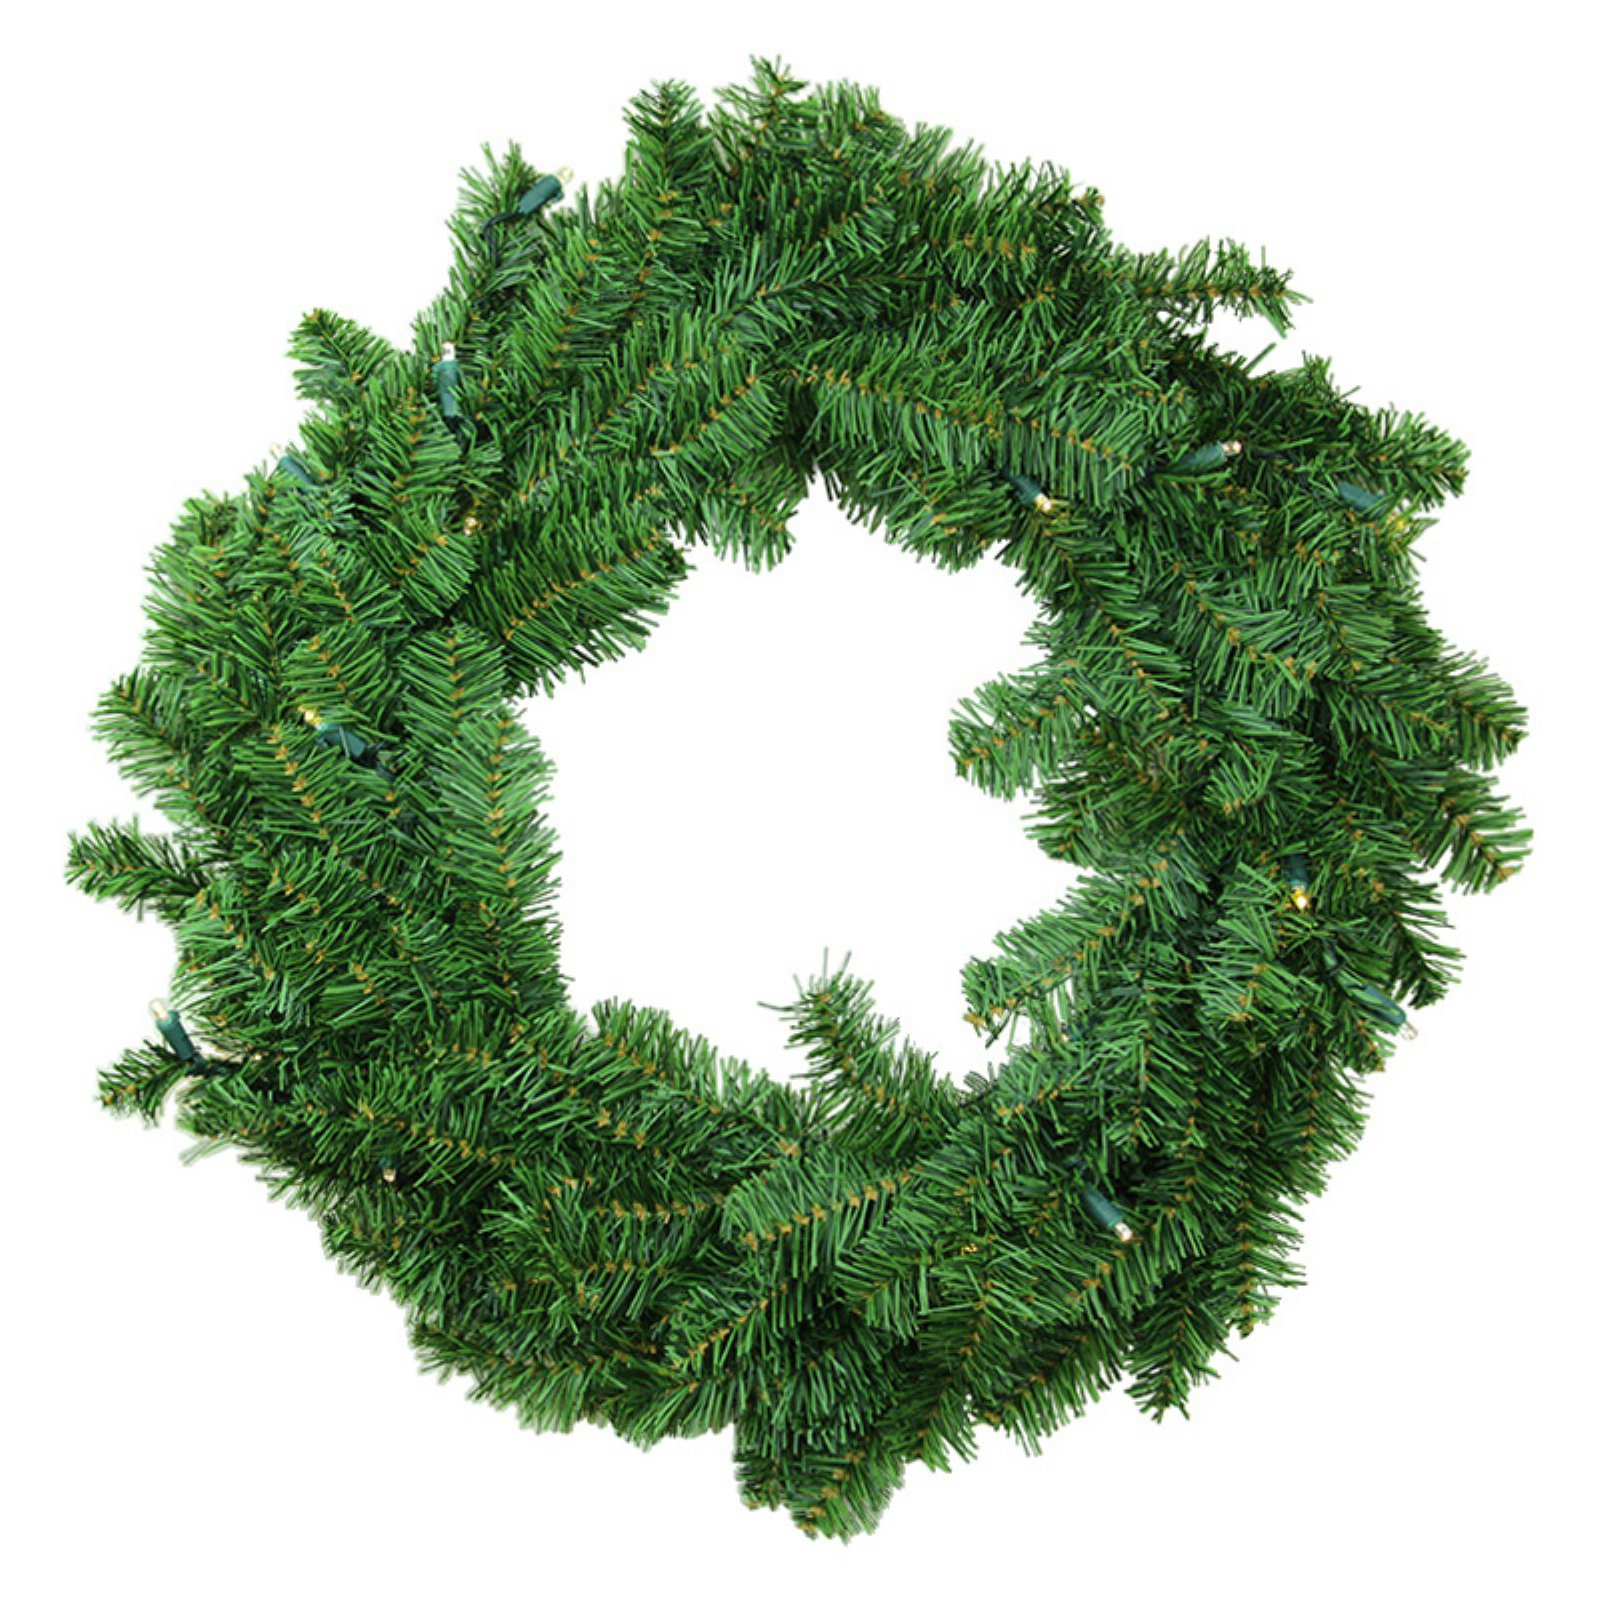 Darice Battery Operated LED Canadian Pine Christmas Wreath